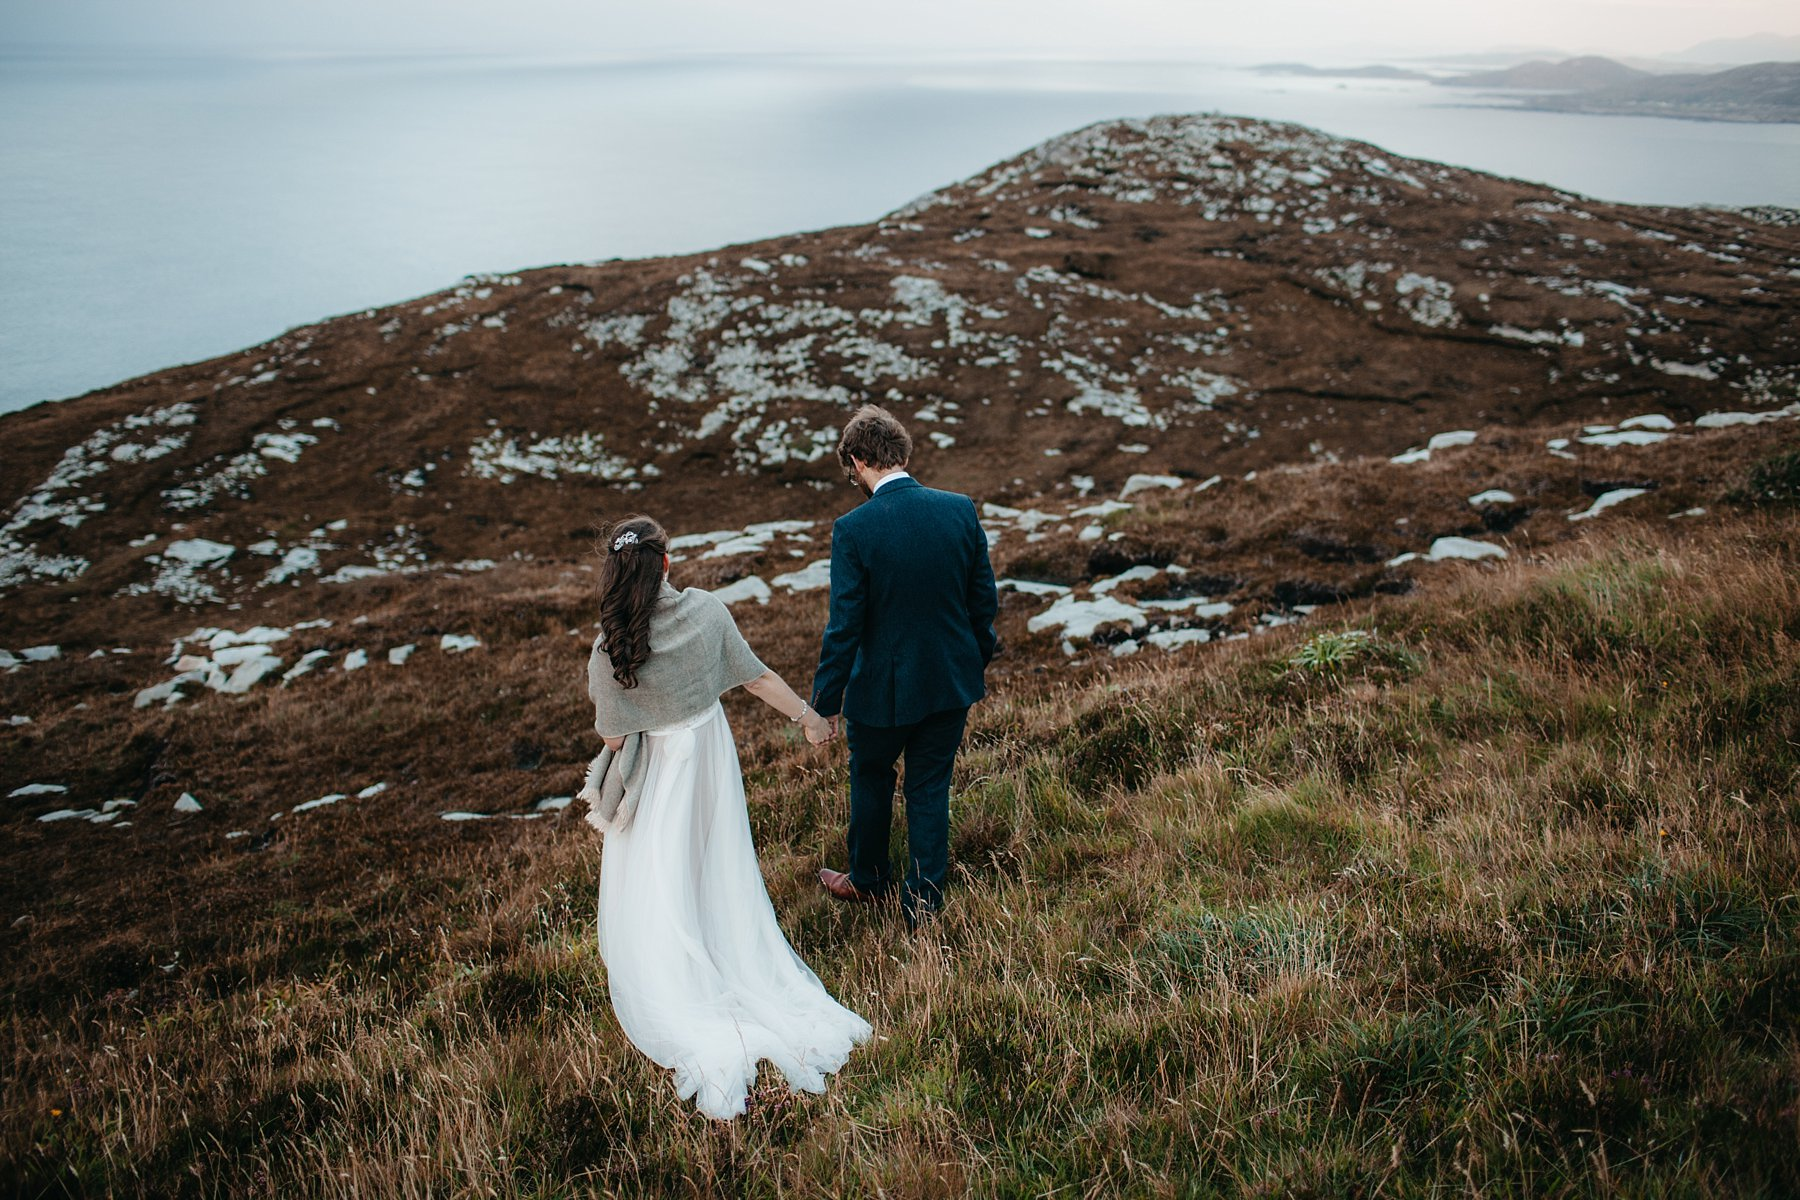 hornhead_donegak_elopement_weddings_0086